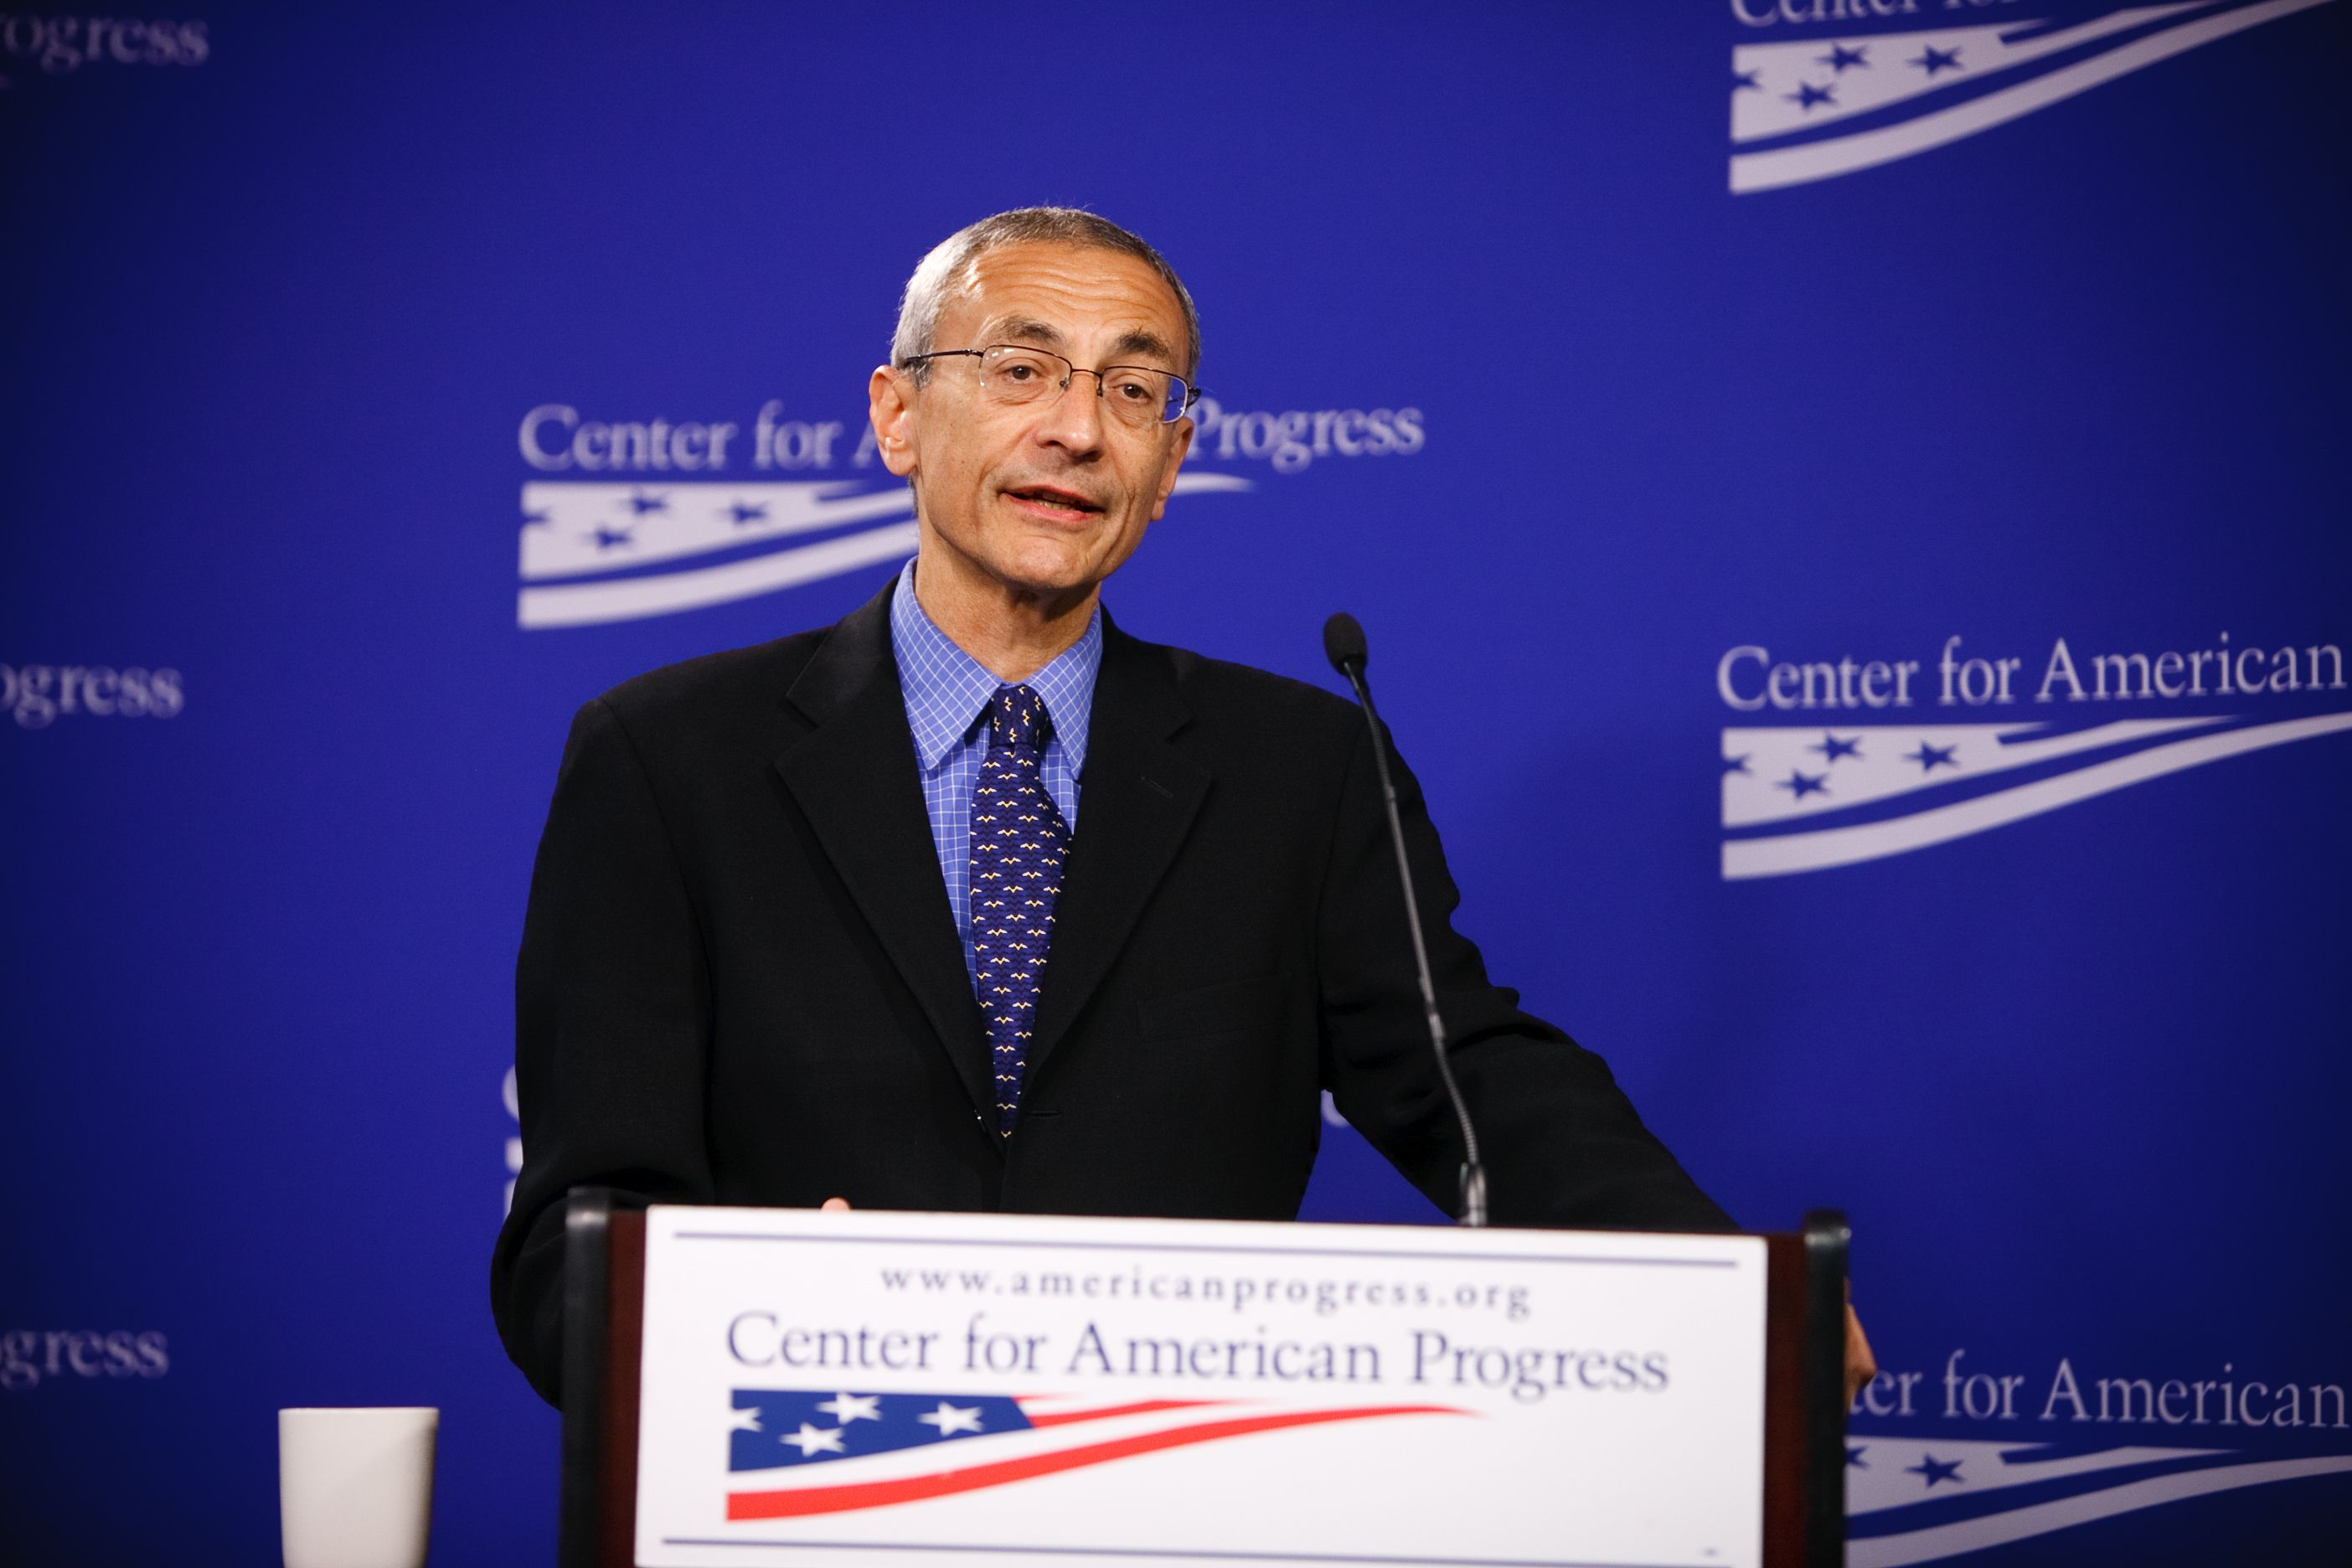 Guess who funds Podesta's Center for American Progress